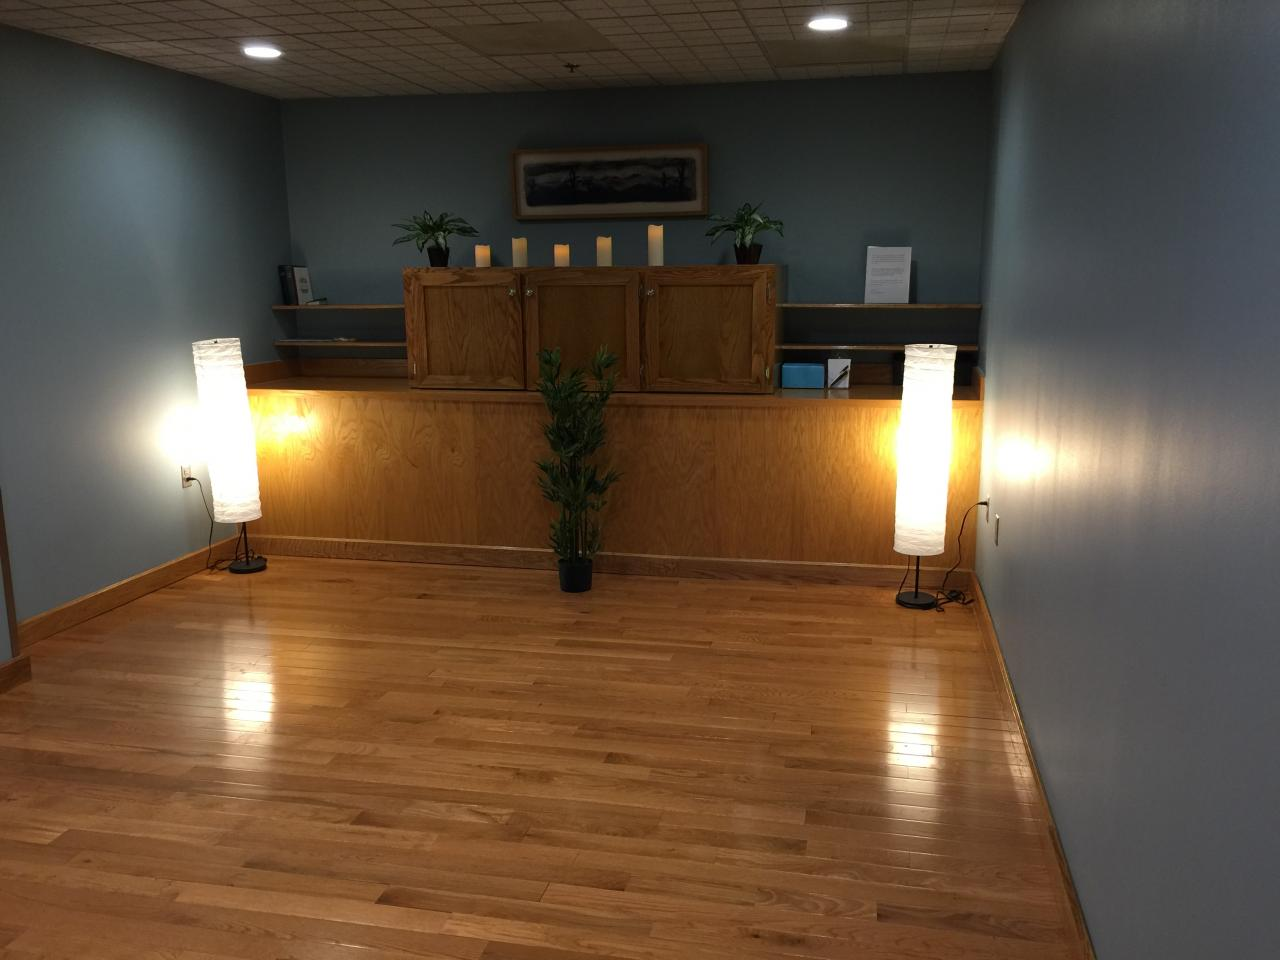 rich mountain meditation room - Meditation Room